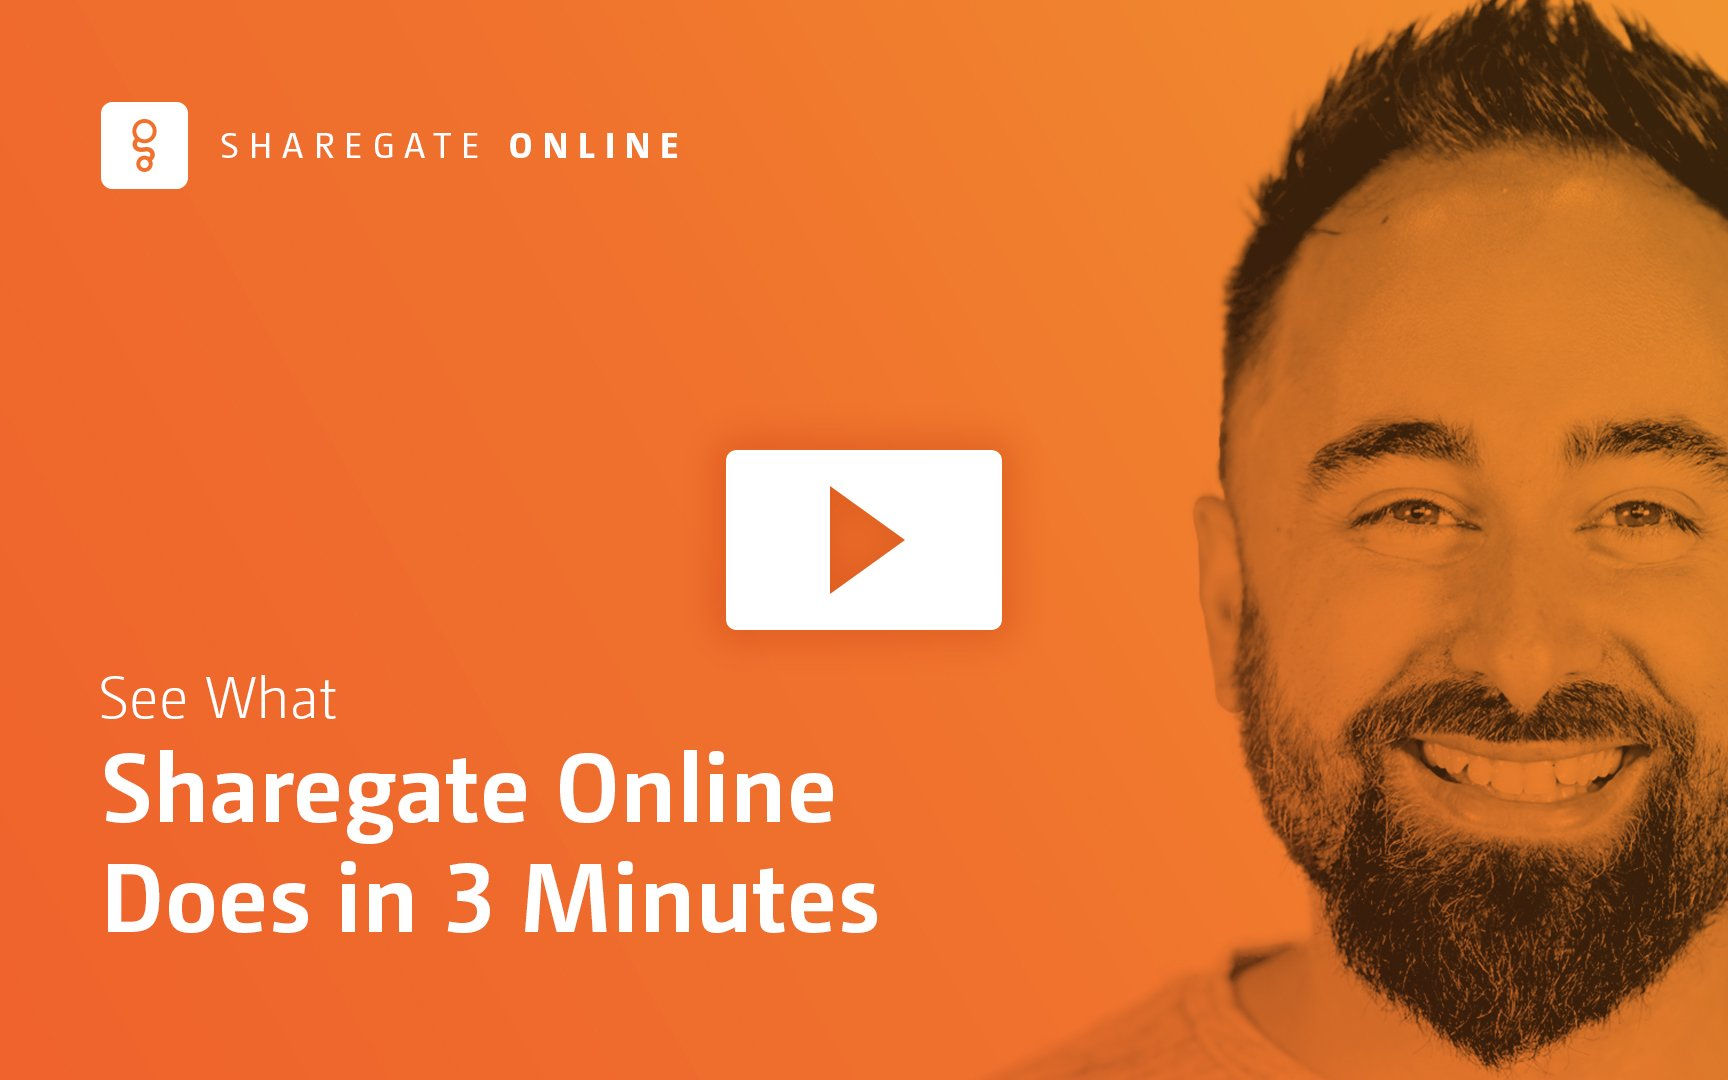 See What Sharegate Online Does in 3 Minutes